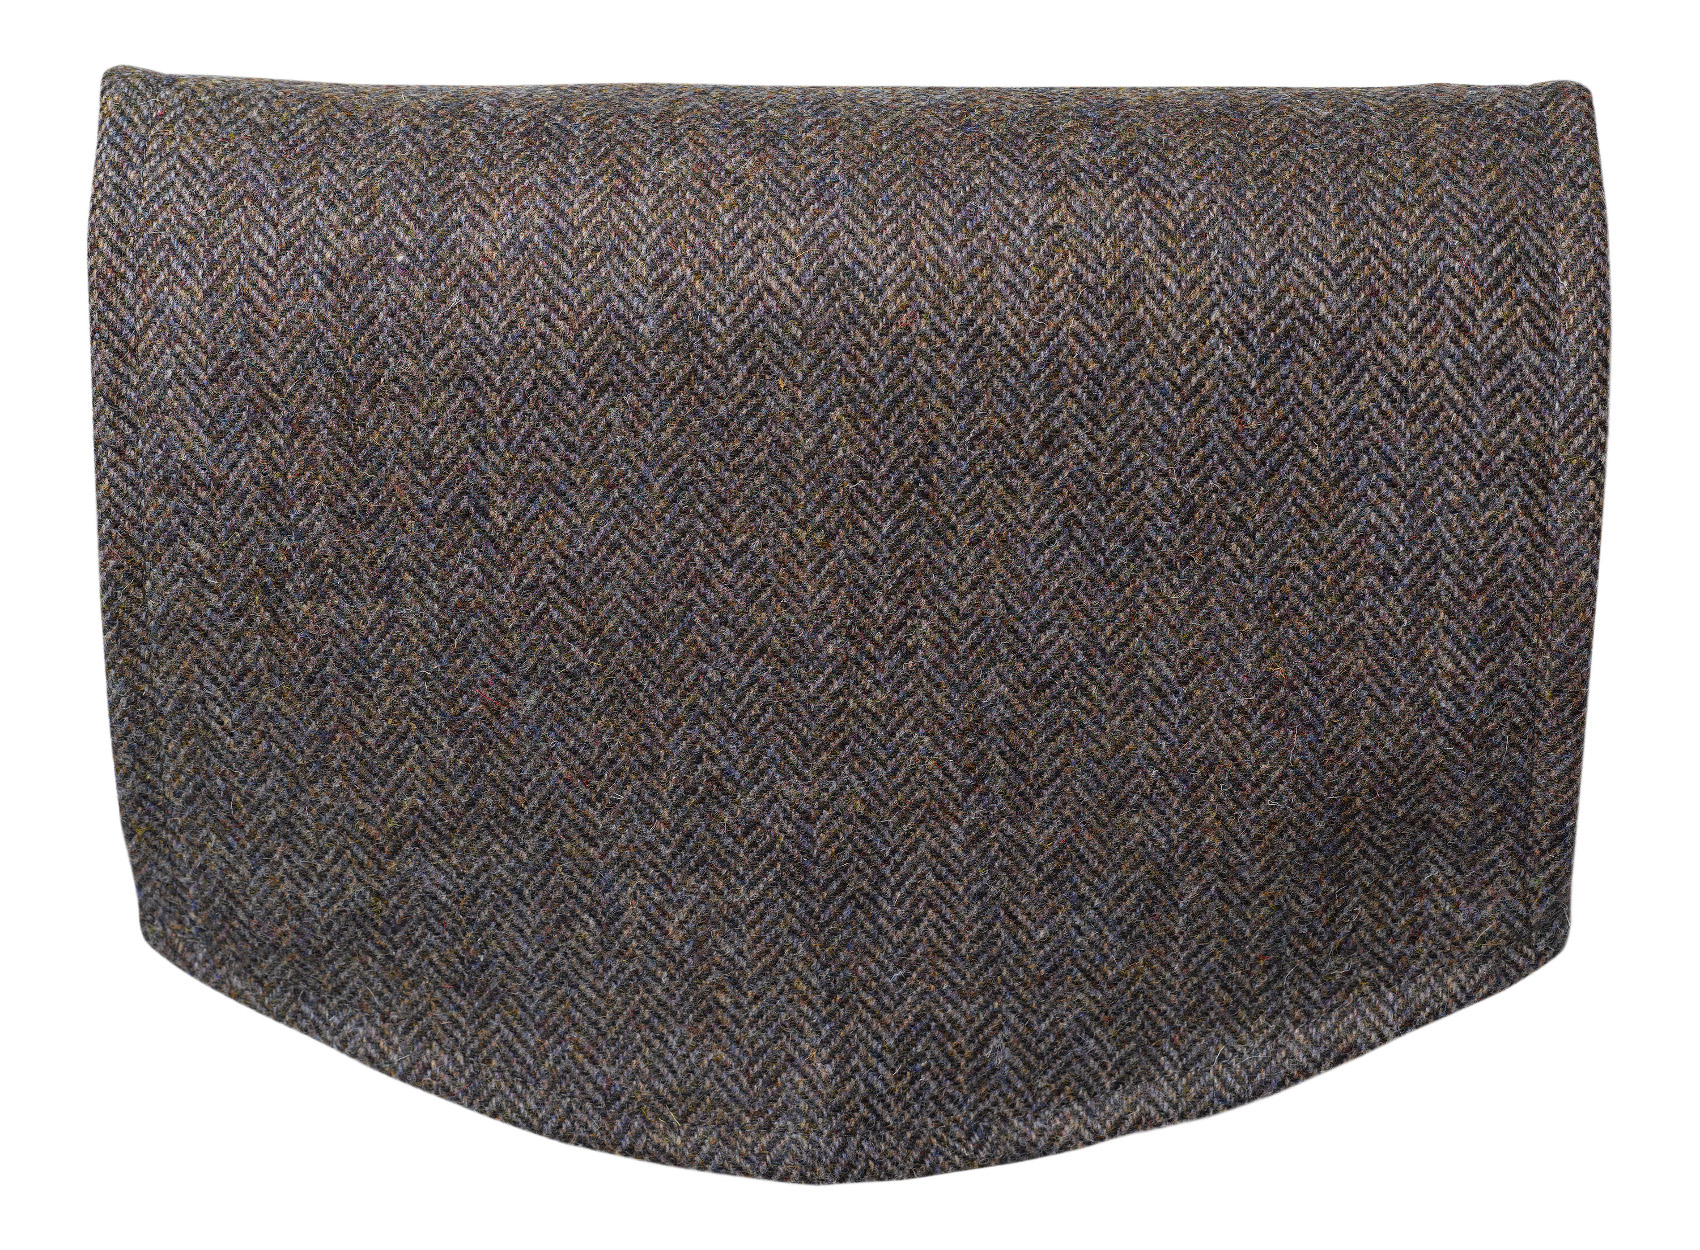 chair covers scotland wheelchairs for dogs uk single antimacassar chairback pure new wool harris tweed